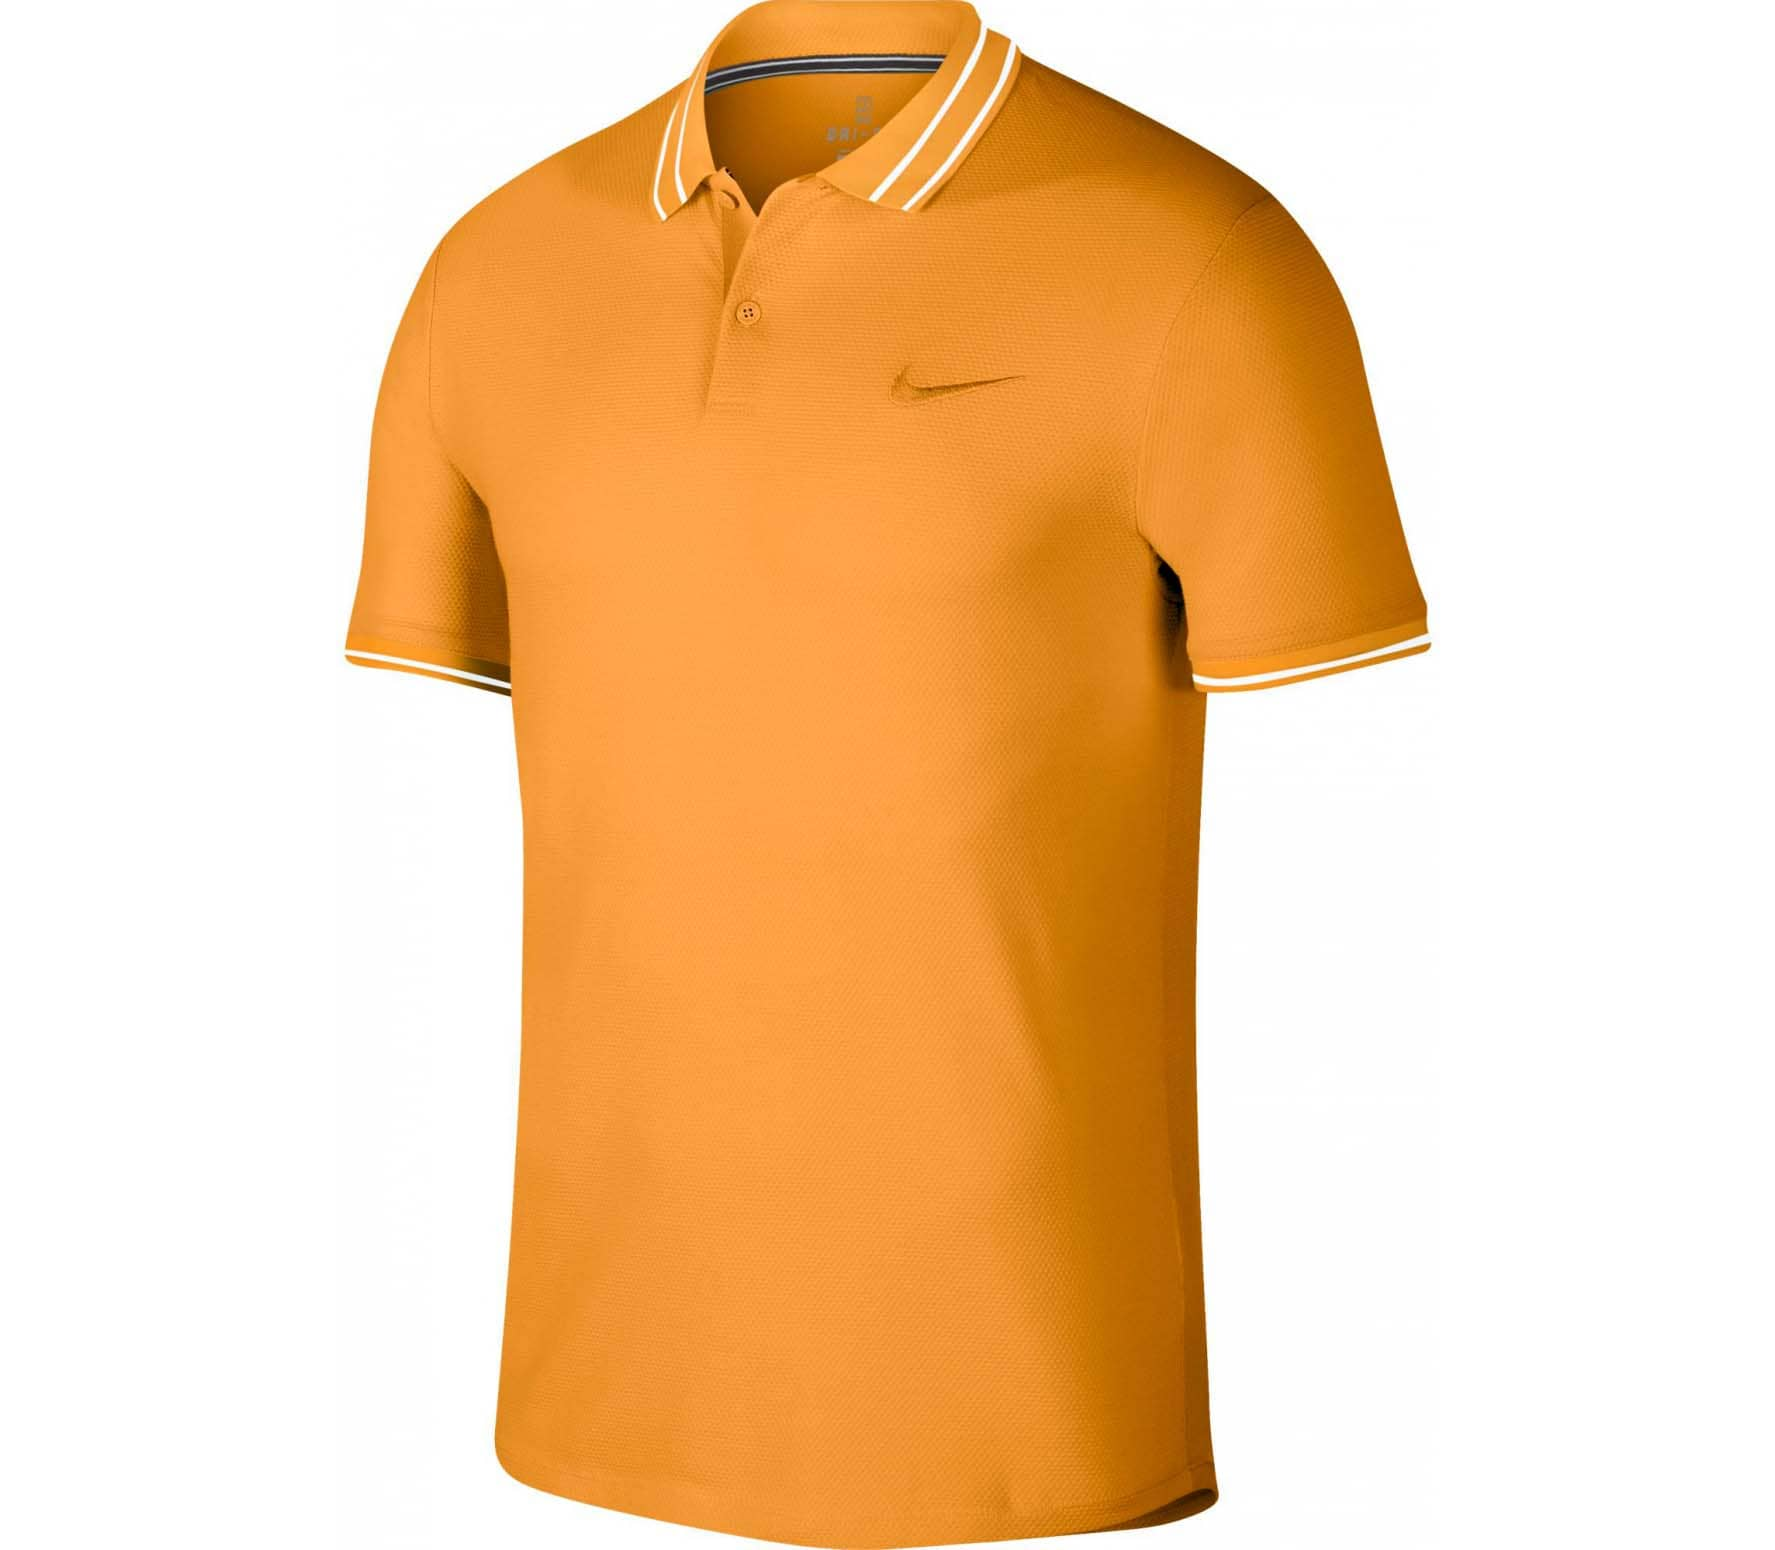 Nike - Court Advantage Herren Tennispolo (gelb)